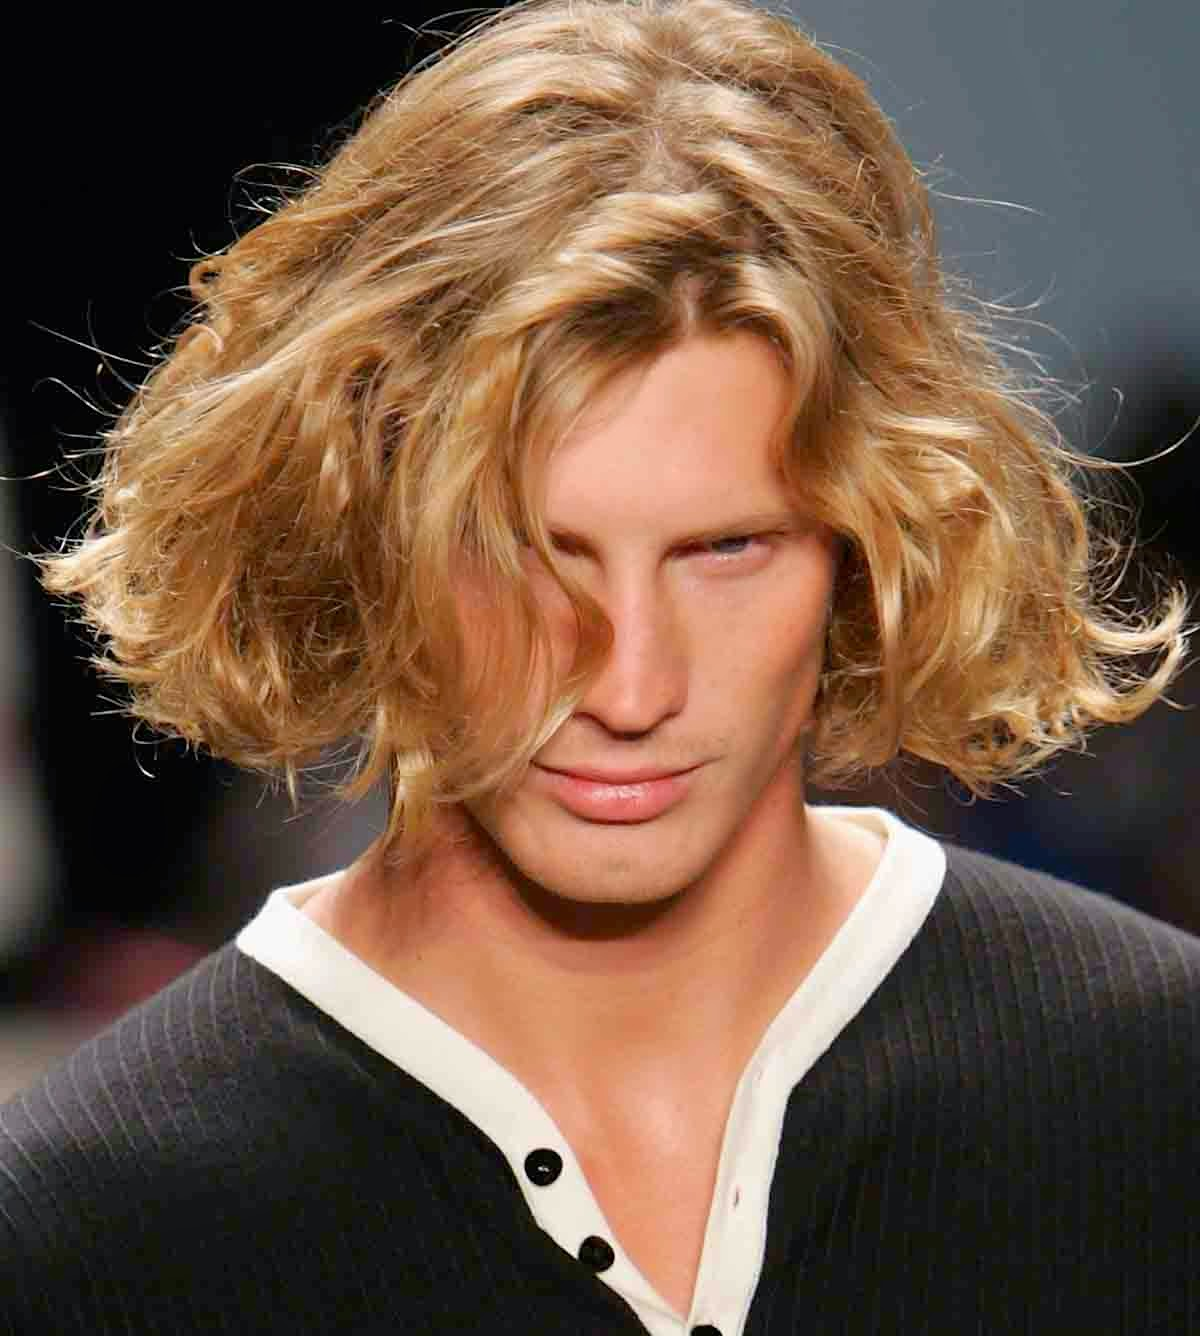 You Can Look Cute With These Boys Long Hairstyles IMPRESSIVE